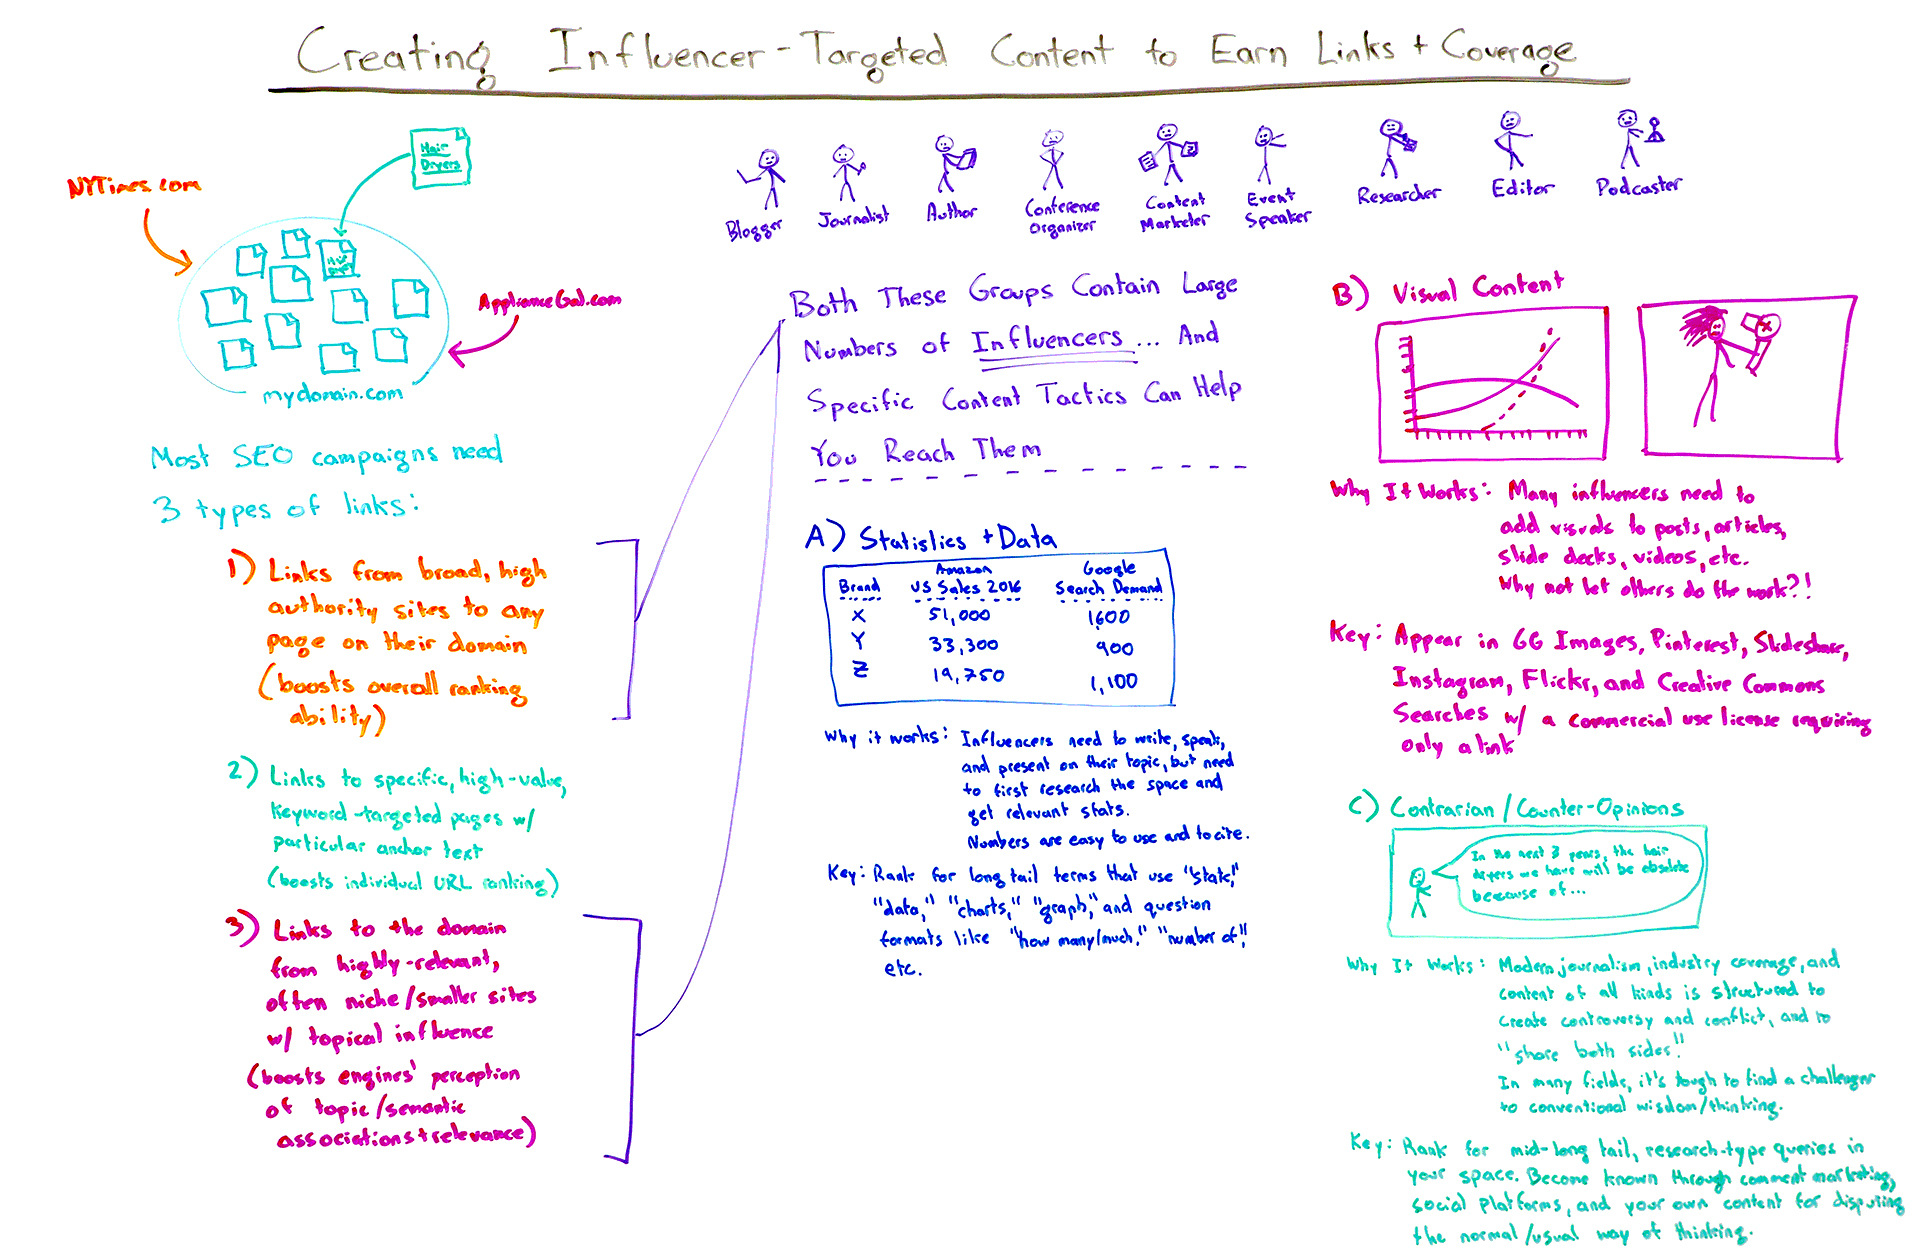 How to create influencer-targeted content - Whiteboard Friday